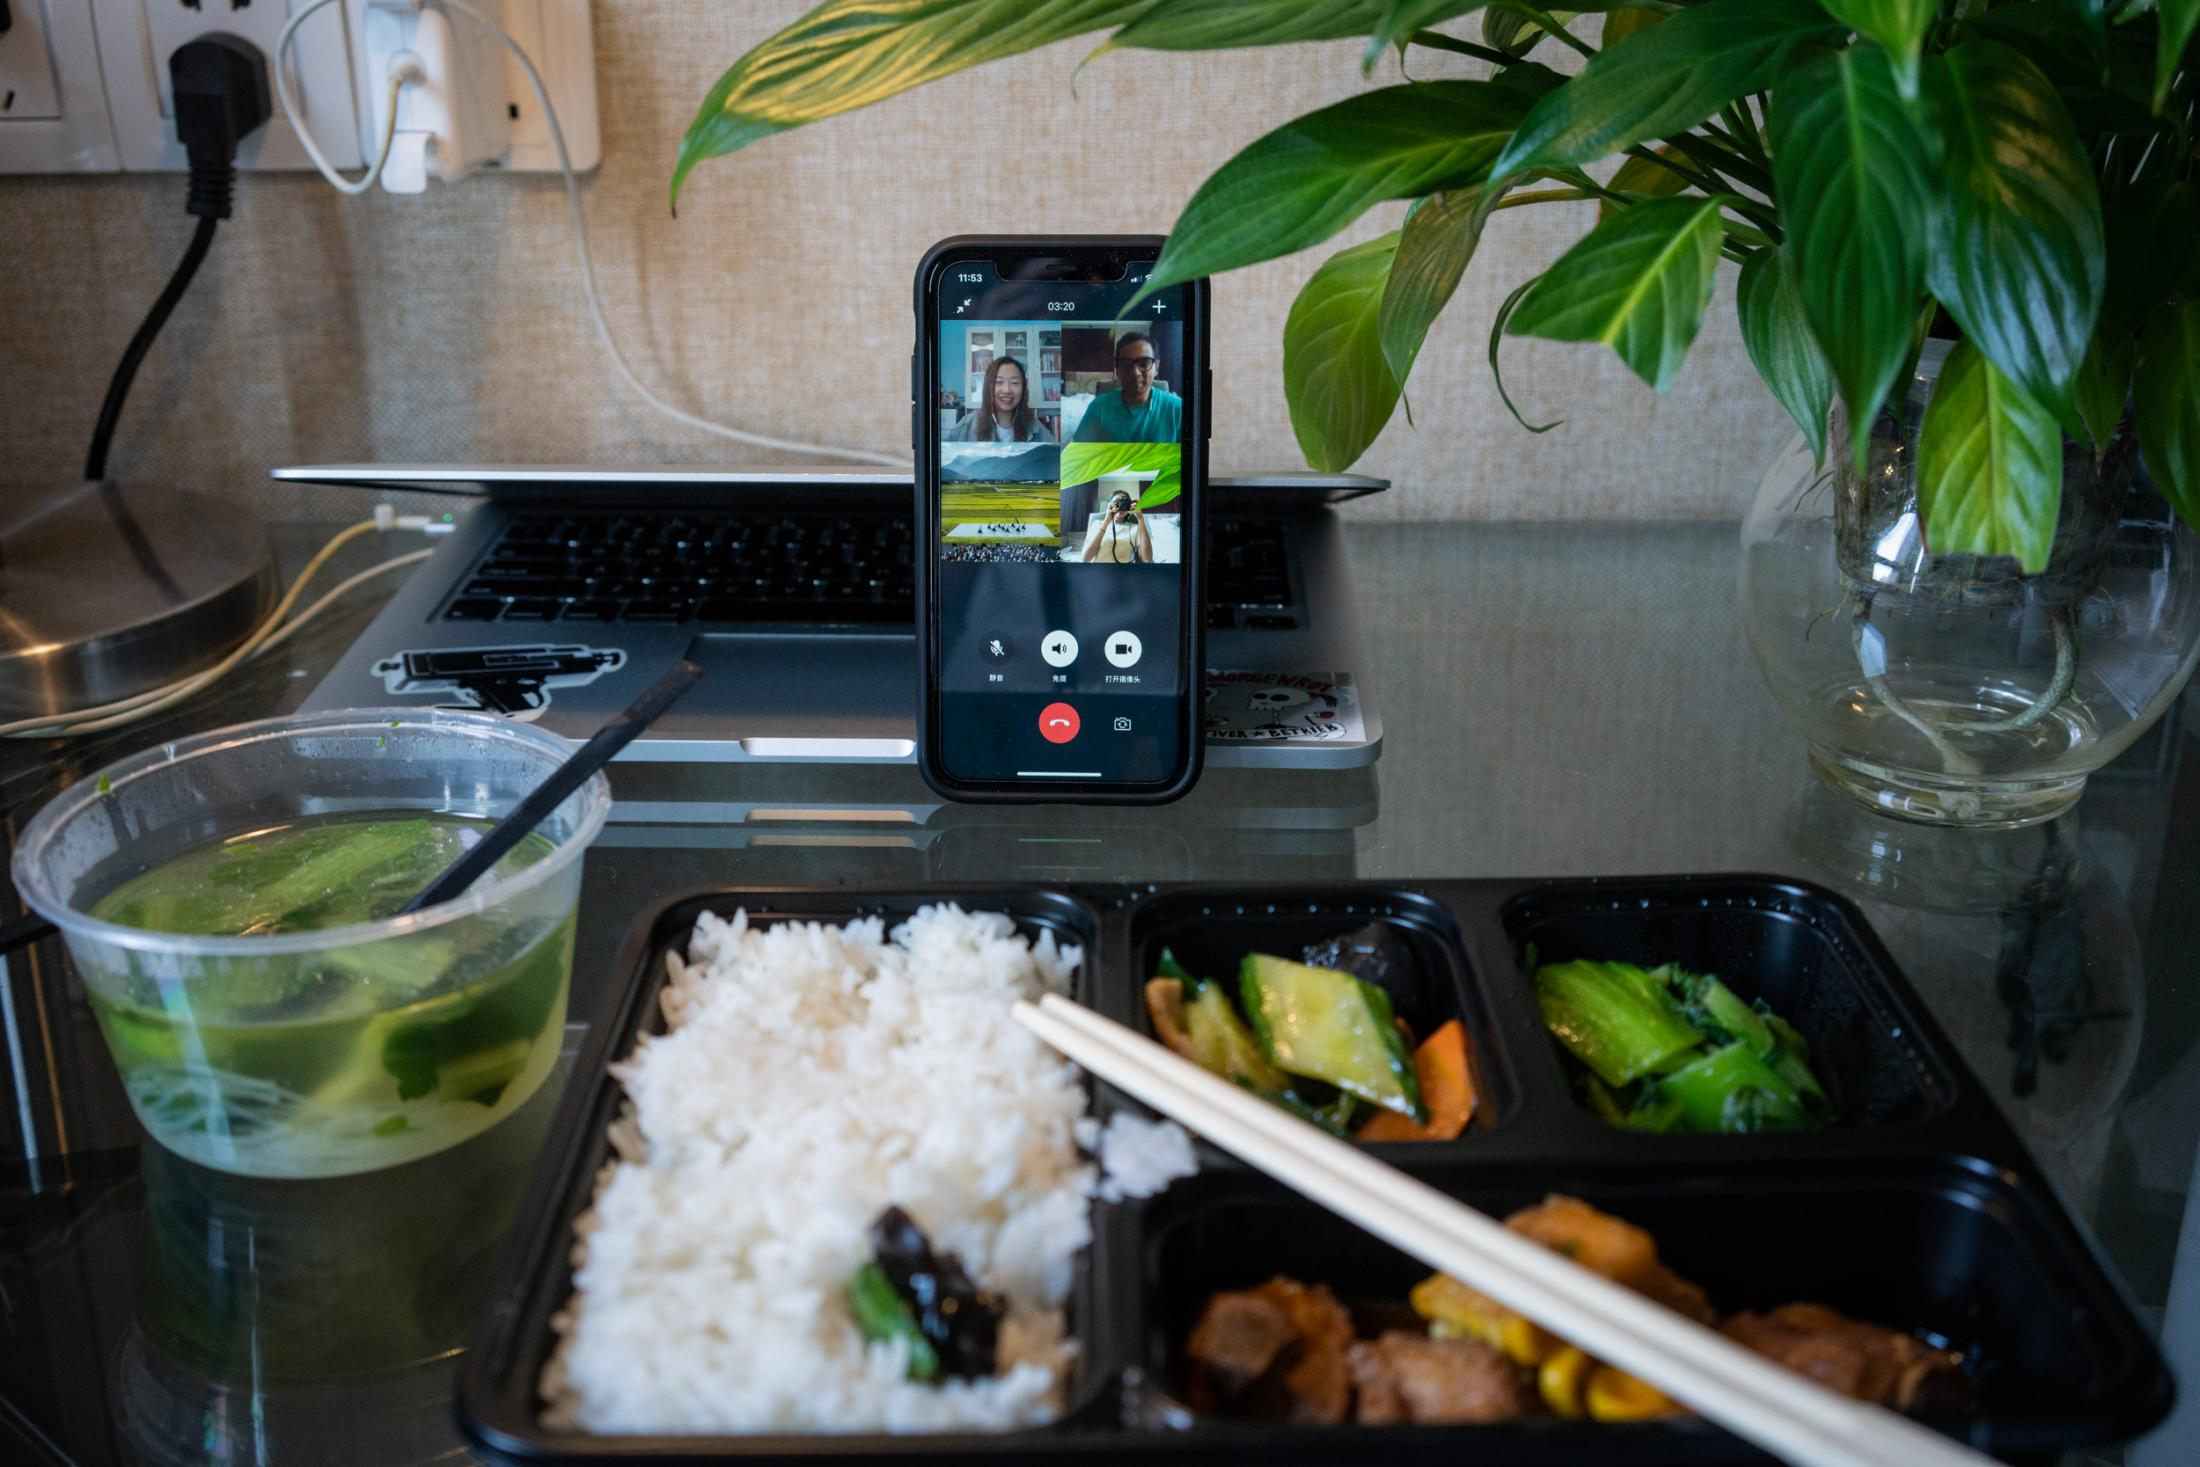 With my lunch box opened in front of the cell phone, we're having a brunch video chat with two other friends in Beijing, on the ninth day of quarantine.